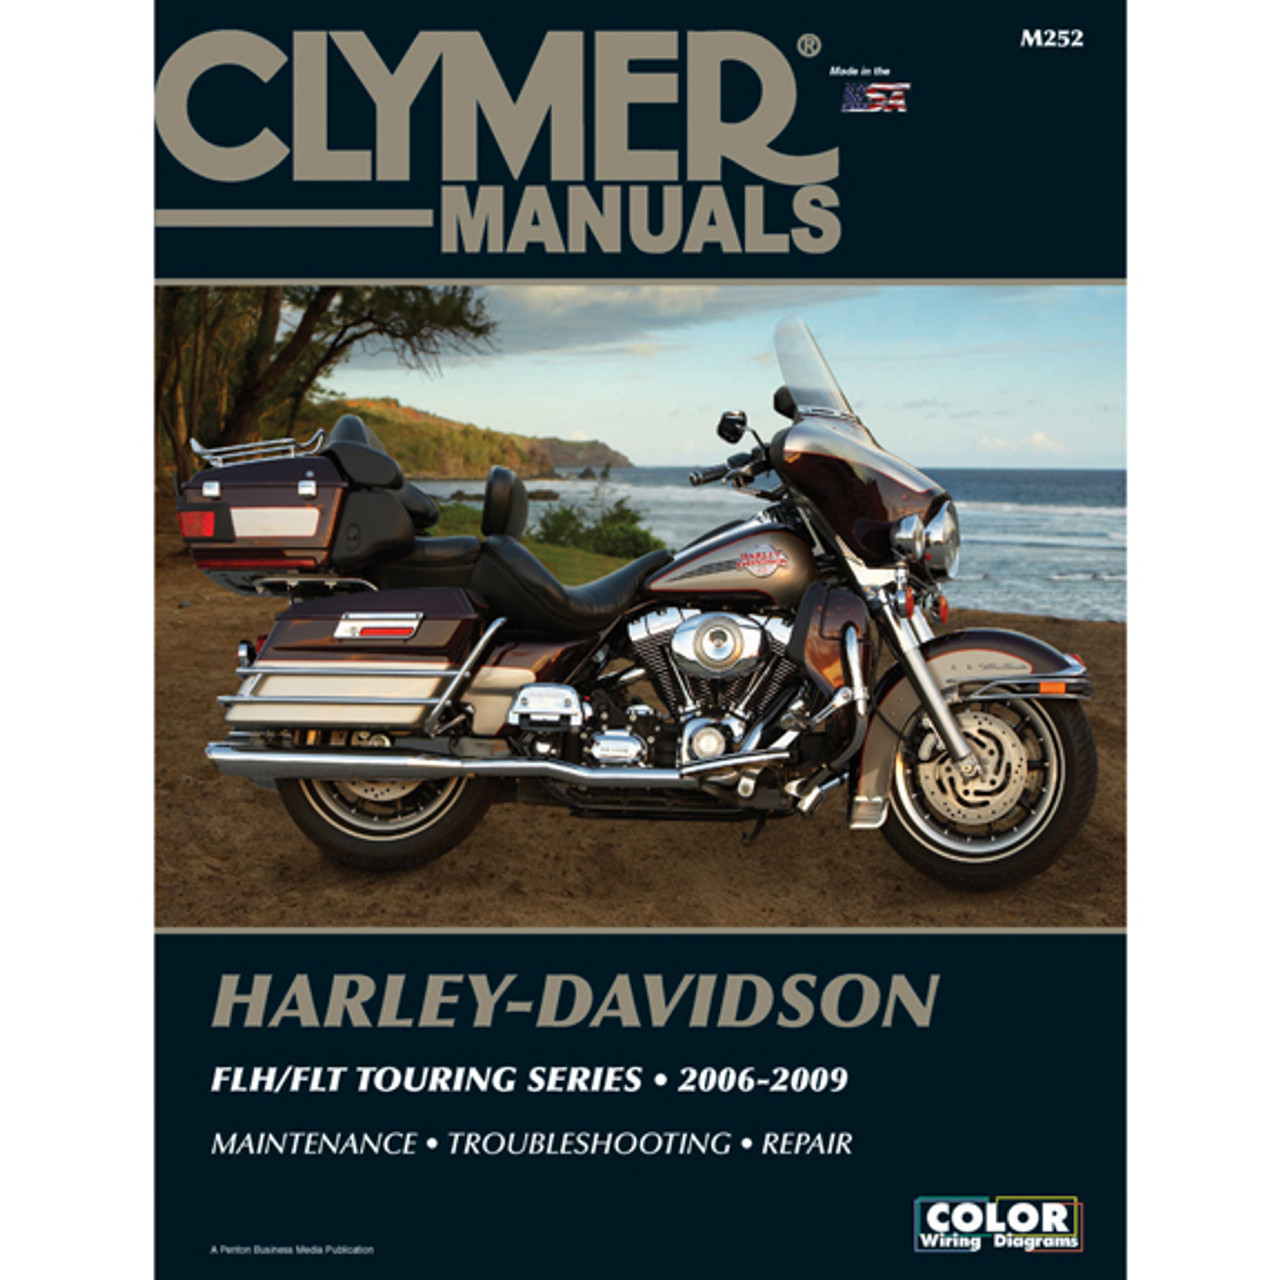 Clymer M252 Service Shop Repair Manual Harley FLH / FLT Touring Series on